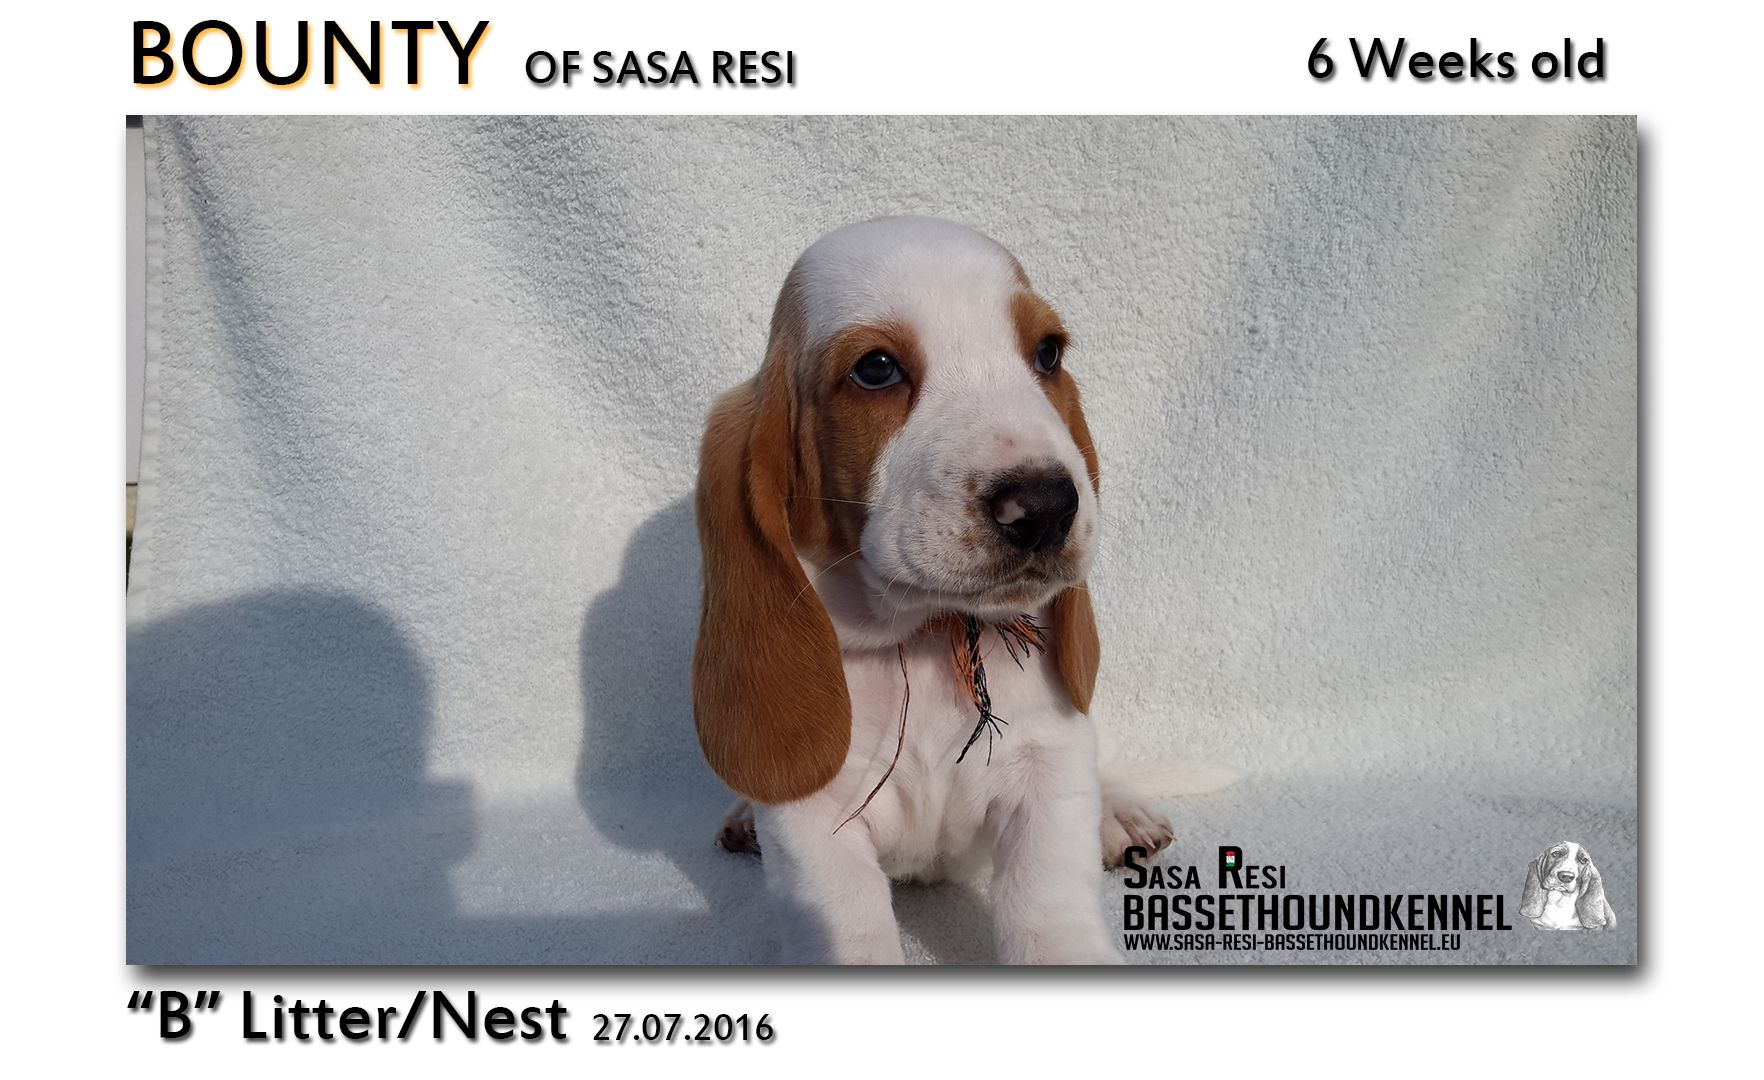 1 compressed 5 SaSa ReSi Bassethoundkennel